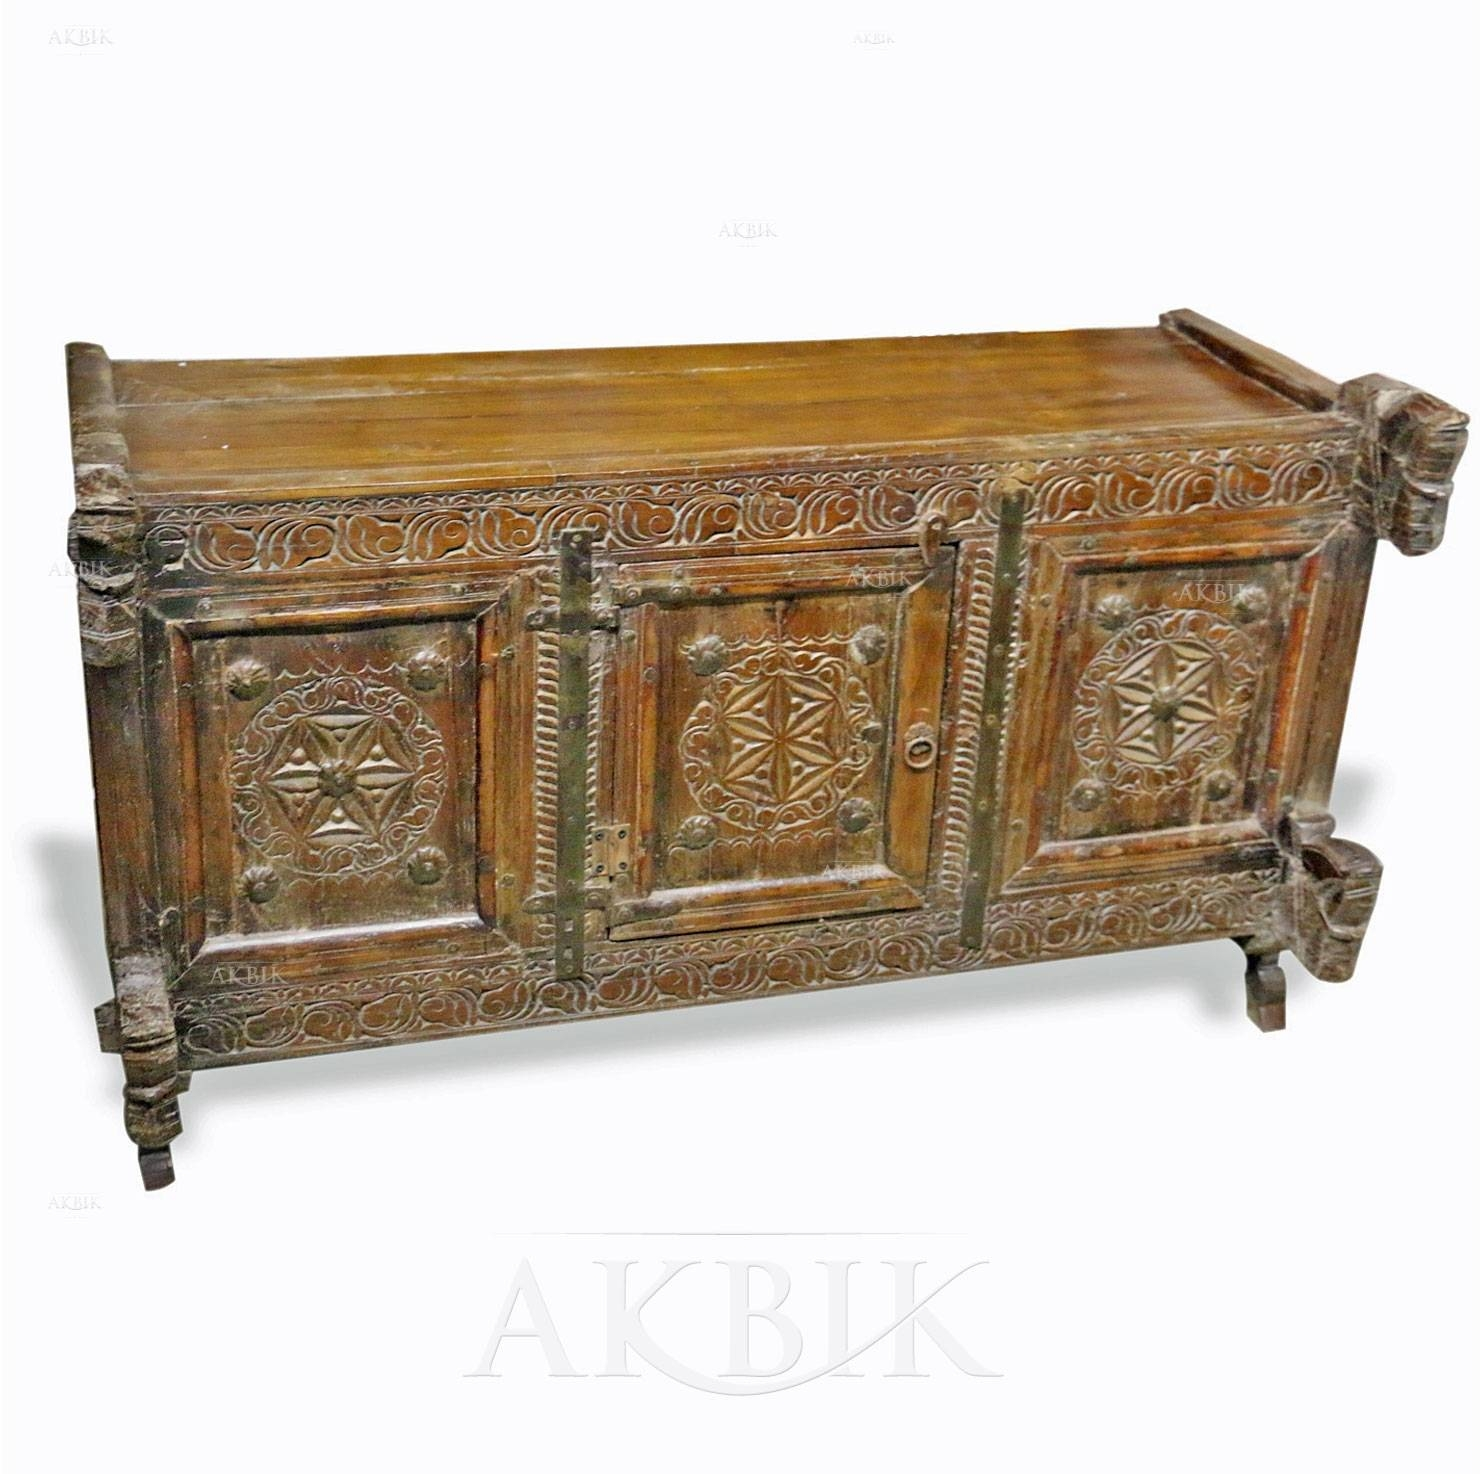 Mediterranean, Levantine & Syrian Furniture Inlaid With Mother Of intended for Indian Sideboard Furniture (Image 11 of 15)